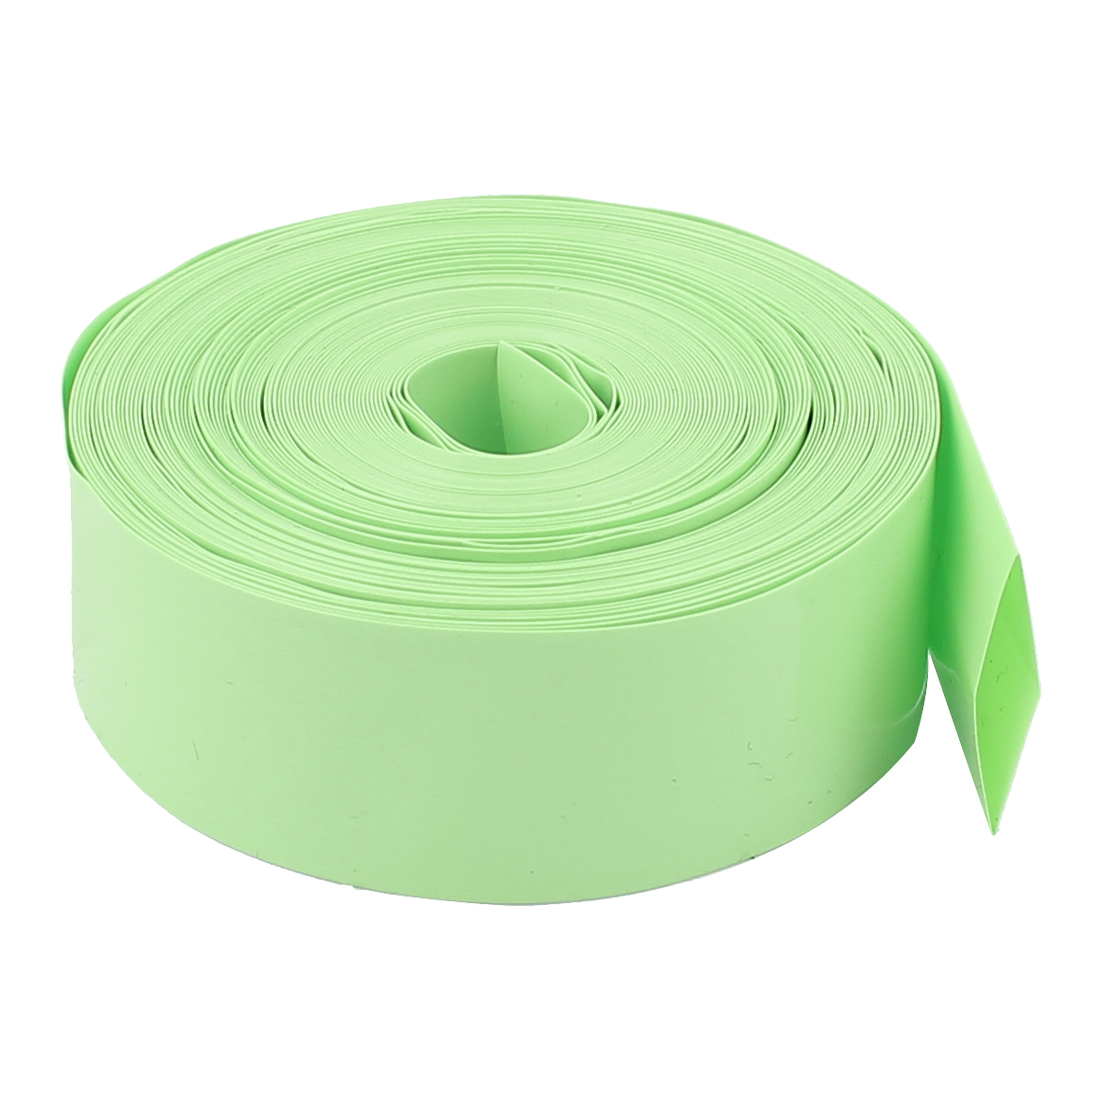 10M 23mm Width PVC Heat Shrink Wrap Tube Green for 1 x AA Battery